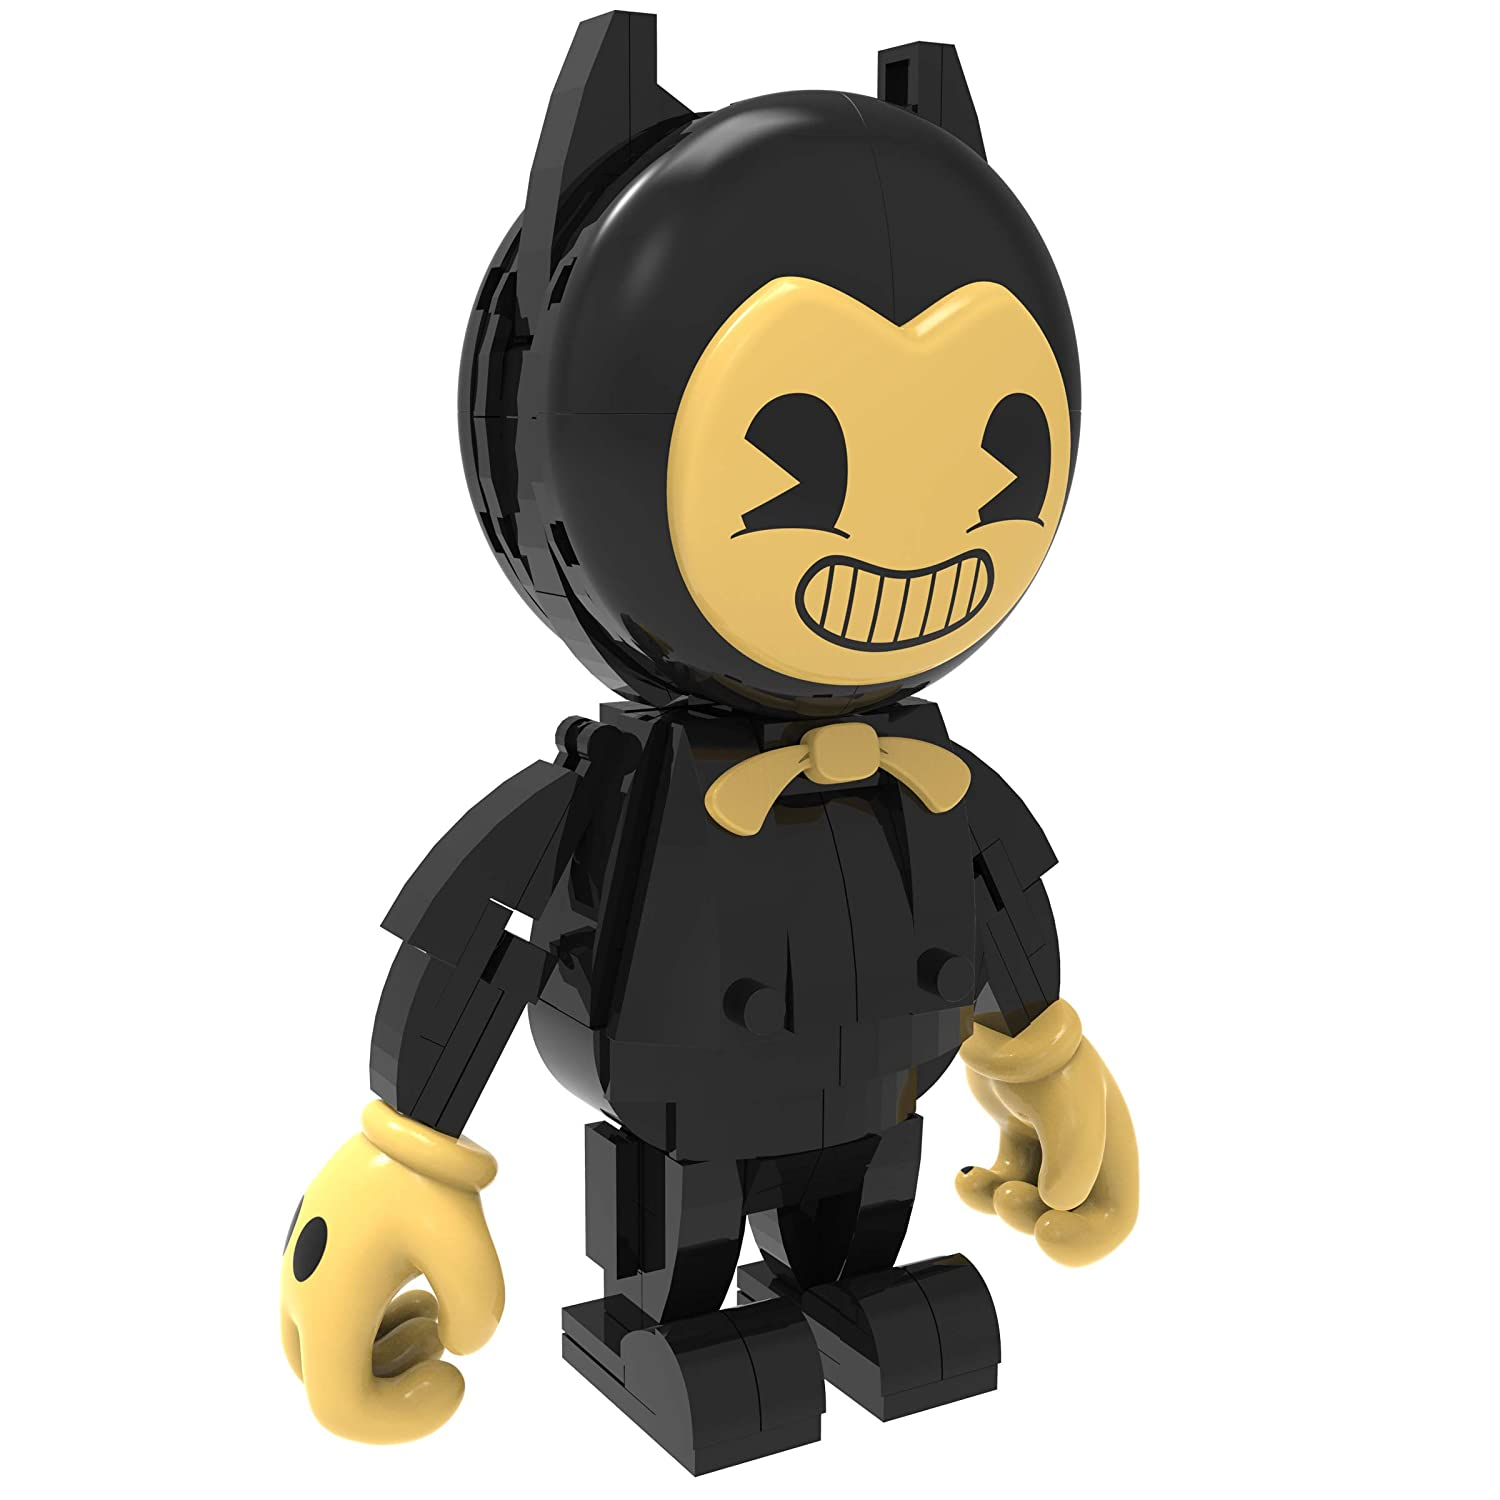 How To Make Bendy In Roblox